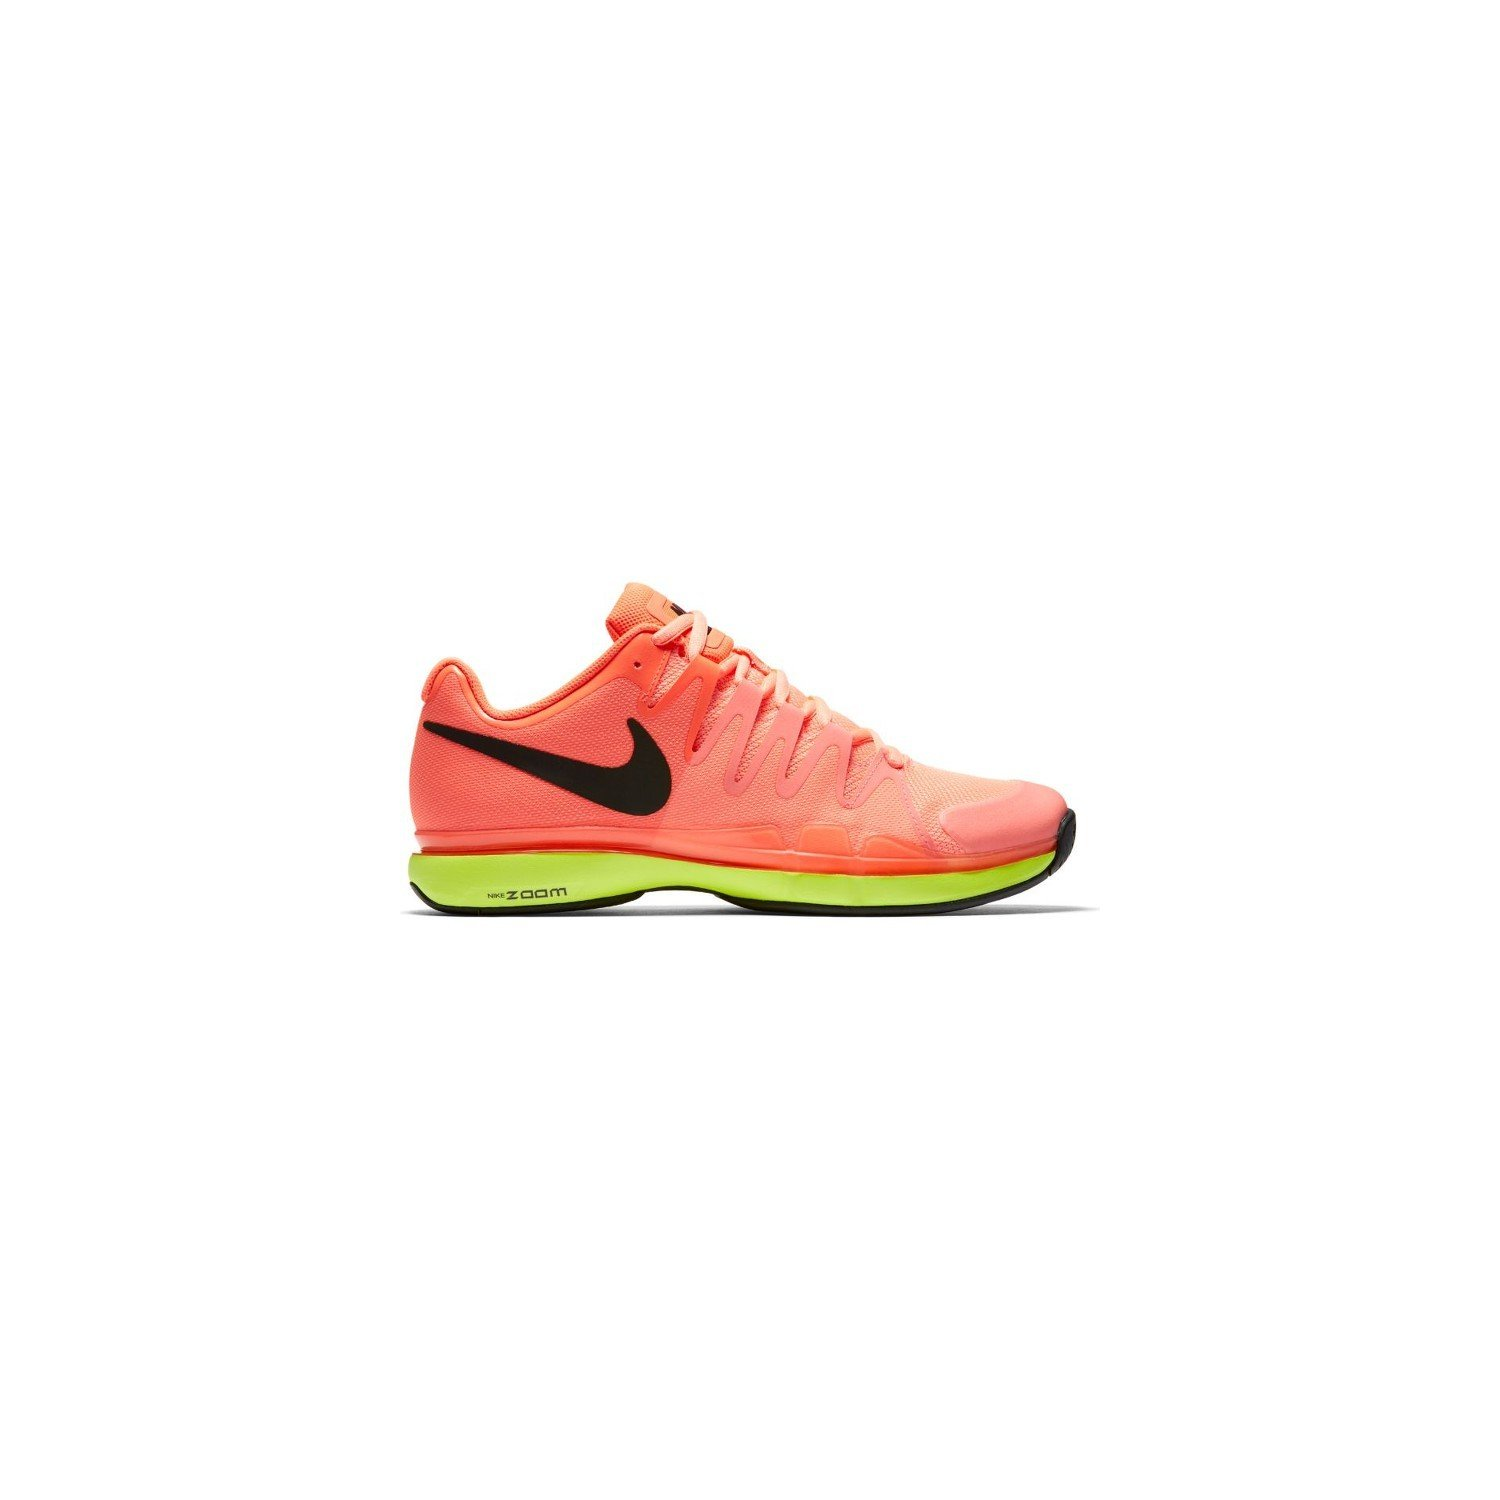 2c2e0ab6a297c Nike Zoom Vapor 9.5 Tour Australian Open 2017 Women - 40 EU - 6 UK   Amazon.co.uk  Shoes   Bags